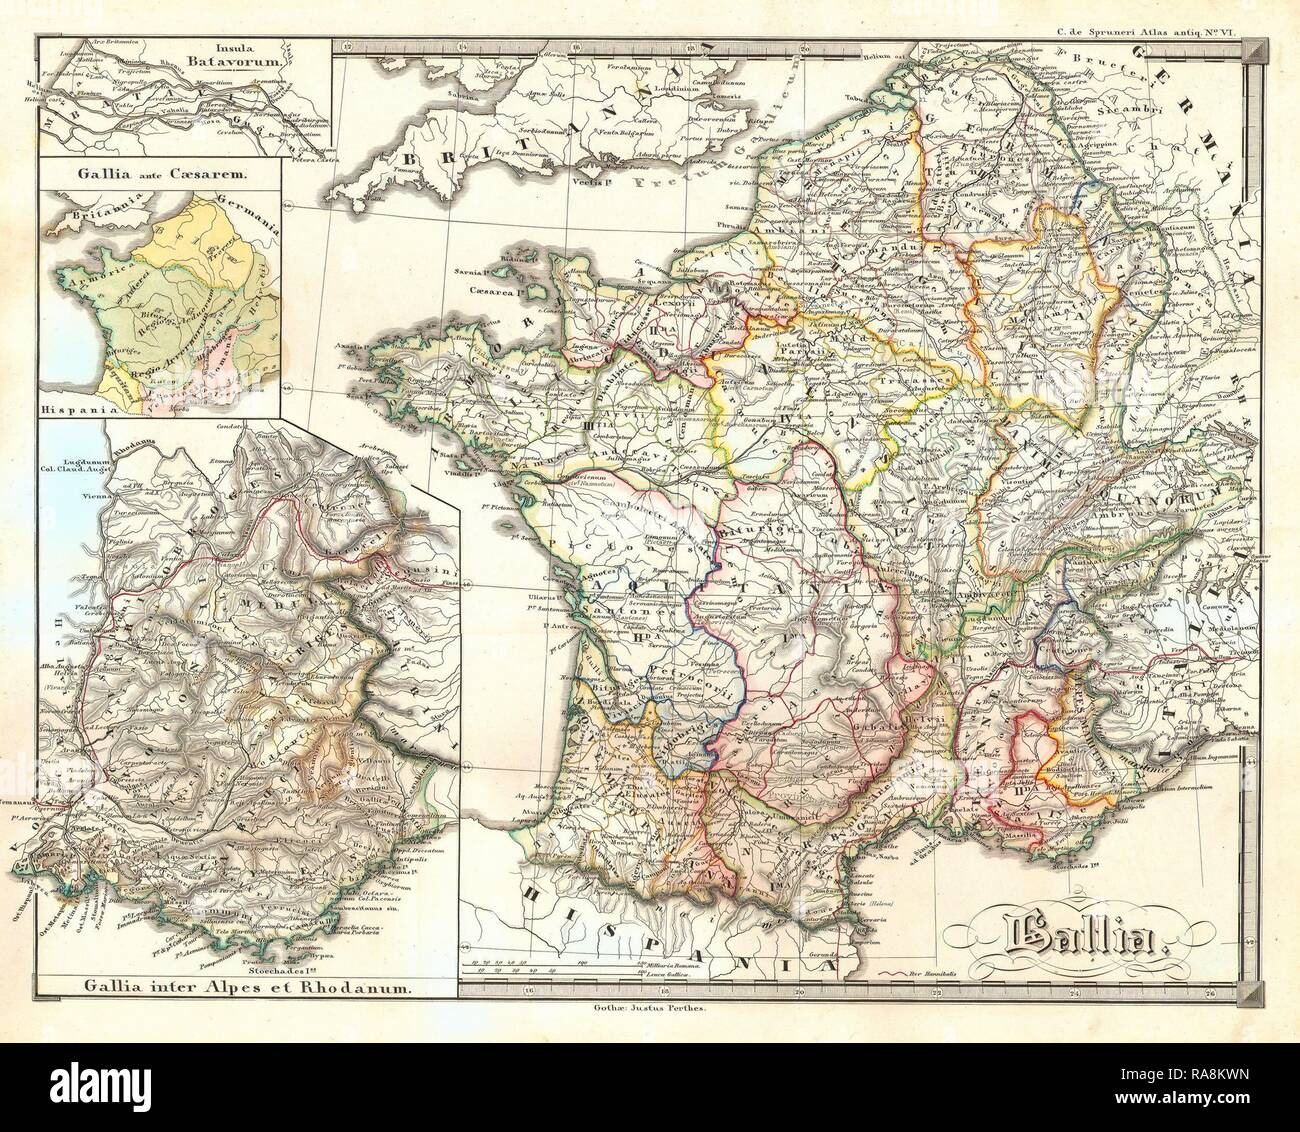 1855, Spruneri Map of France, Gaul, Gallia in Ancient Times. Reimagined by Gibon. Classic art with a modern twist reimagined - Stock Image